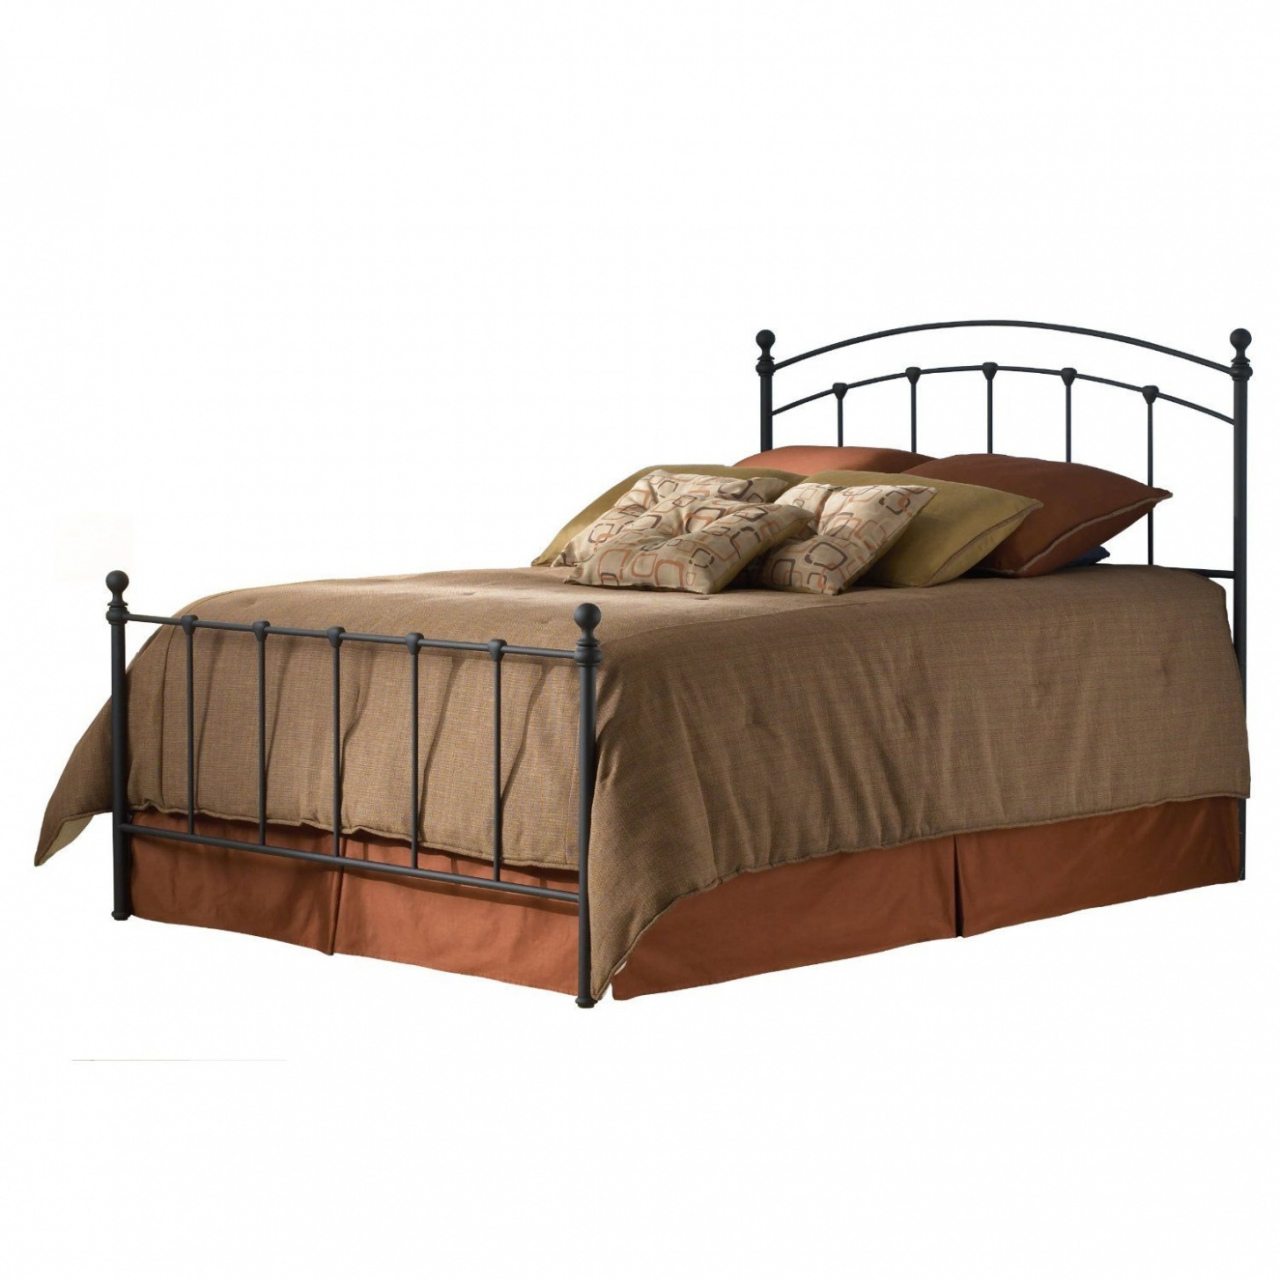 vintage iron bed king size iron bed frame rabbssteak house durch vintage iron bed 3